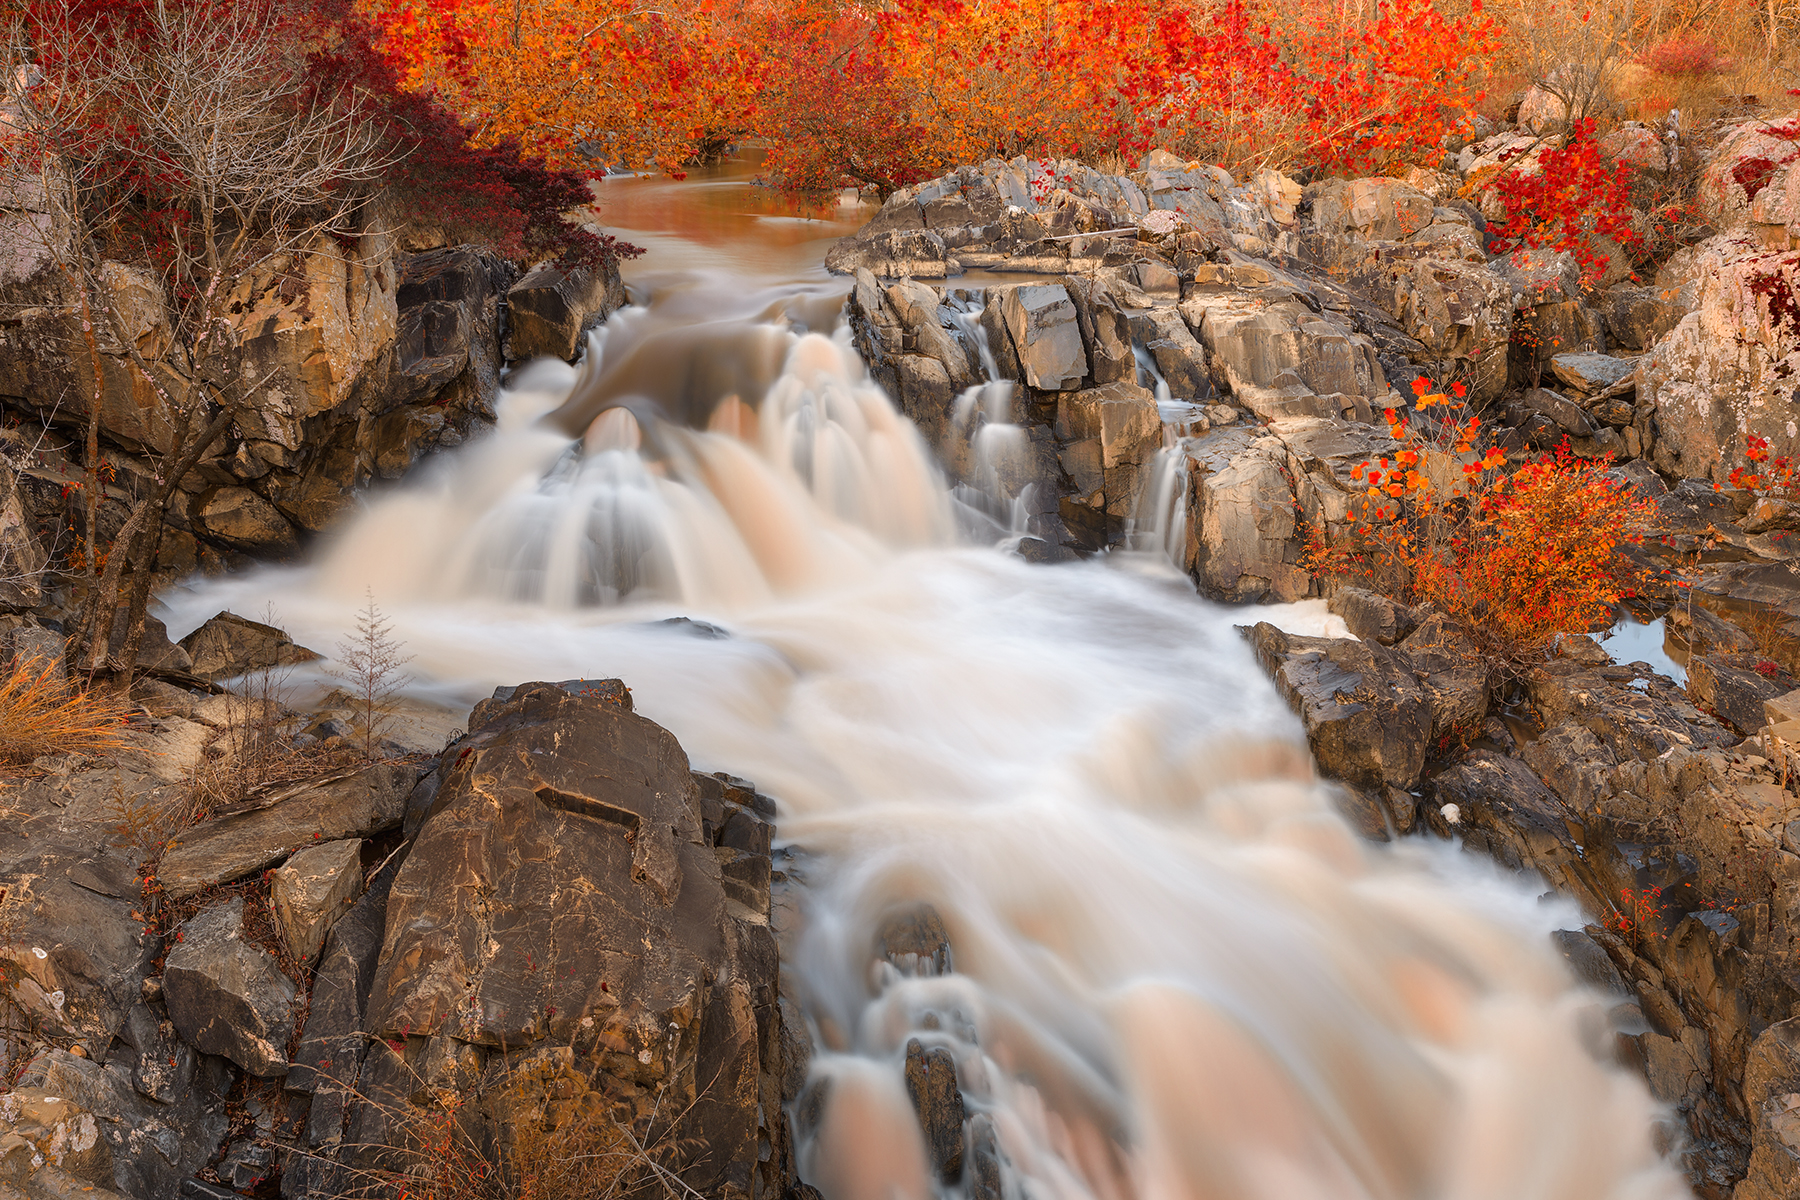 Great falls autumn cascades - amber ruby hdr photo